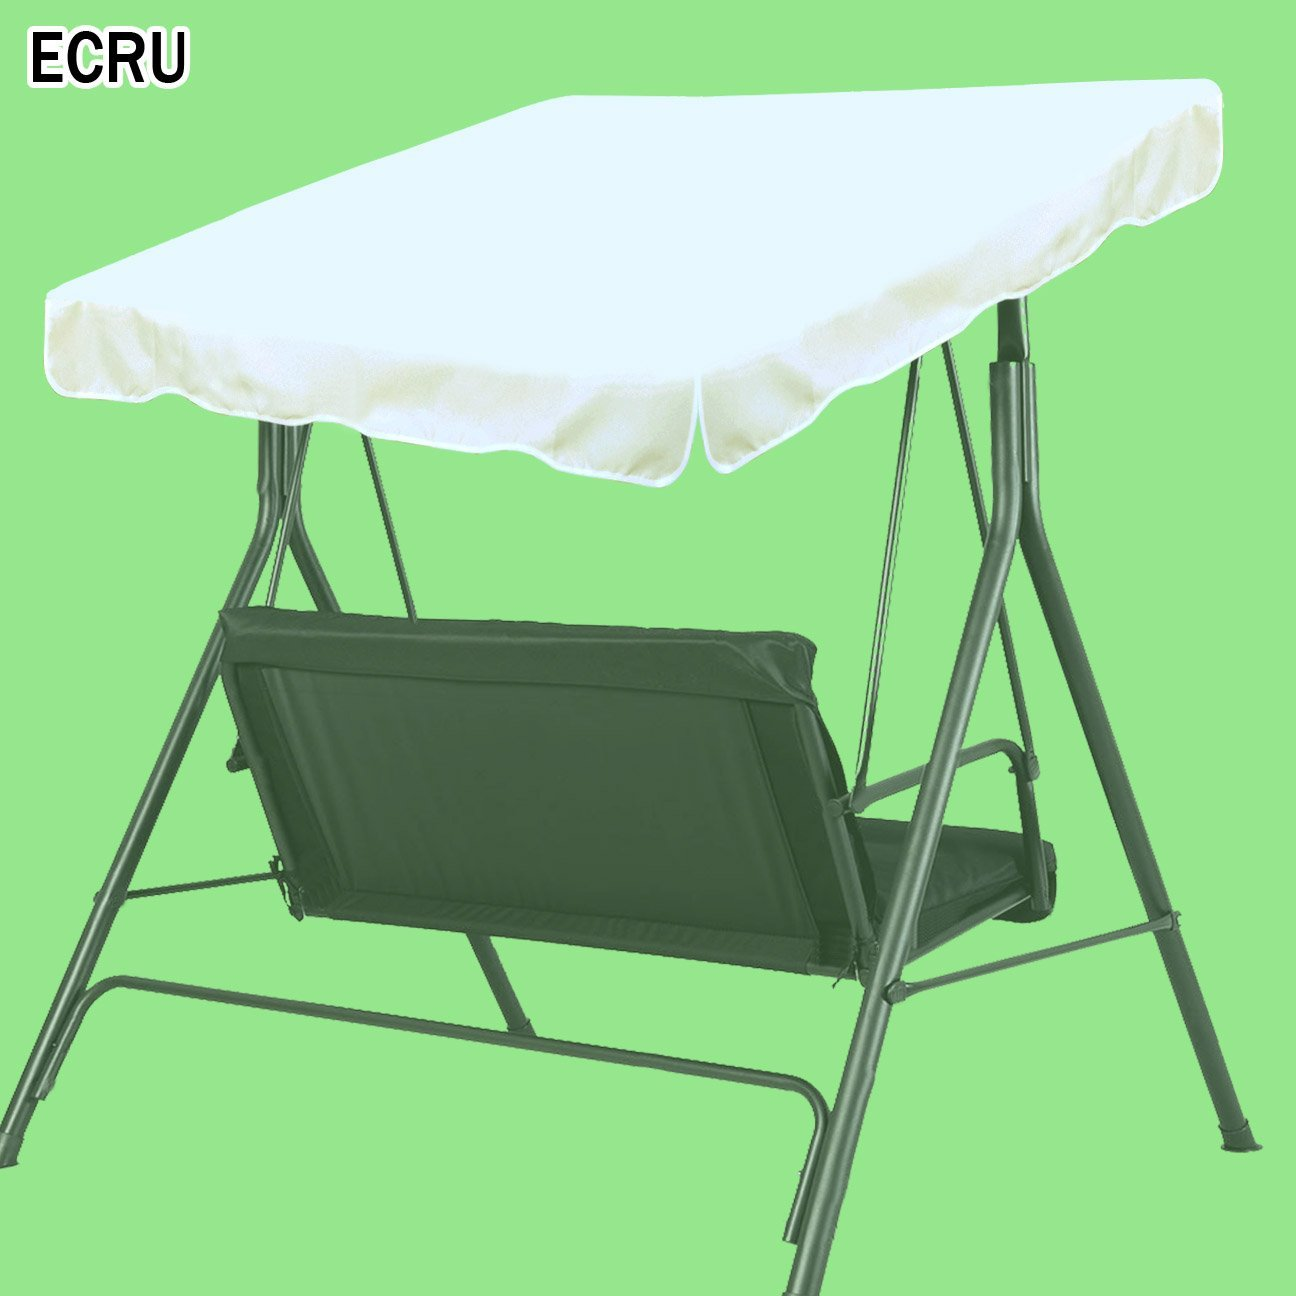 Strong Camel New Patio Outdoor 77''x43'' Swing Canopy Replacement Porch Top Cover Seat Furniture (Ecru)